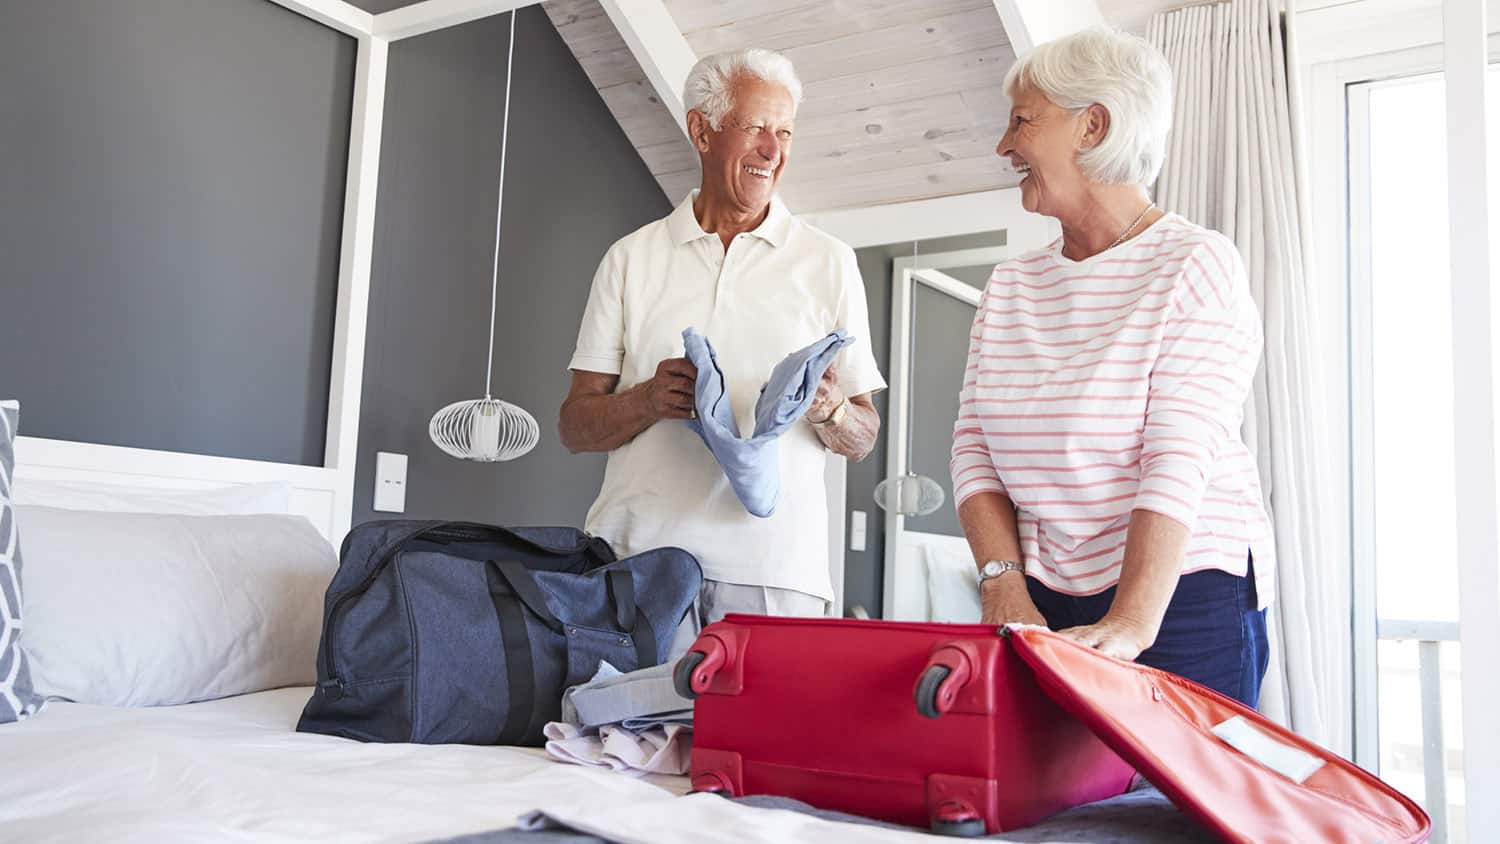 Travel Over 50: Top 10 Packing Tips from an Experienced Journey Lover | Sixty and Me